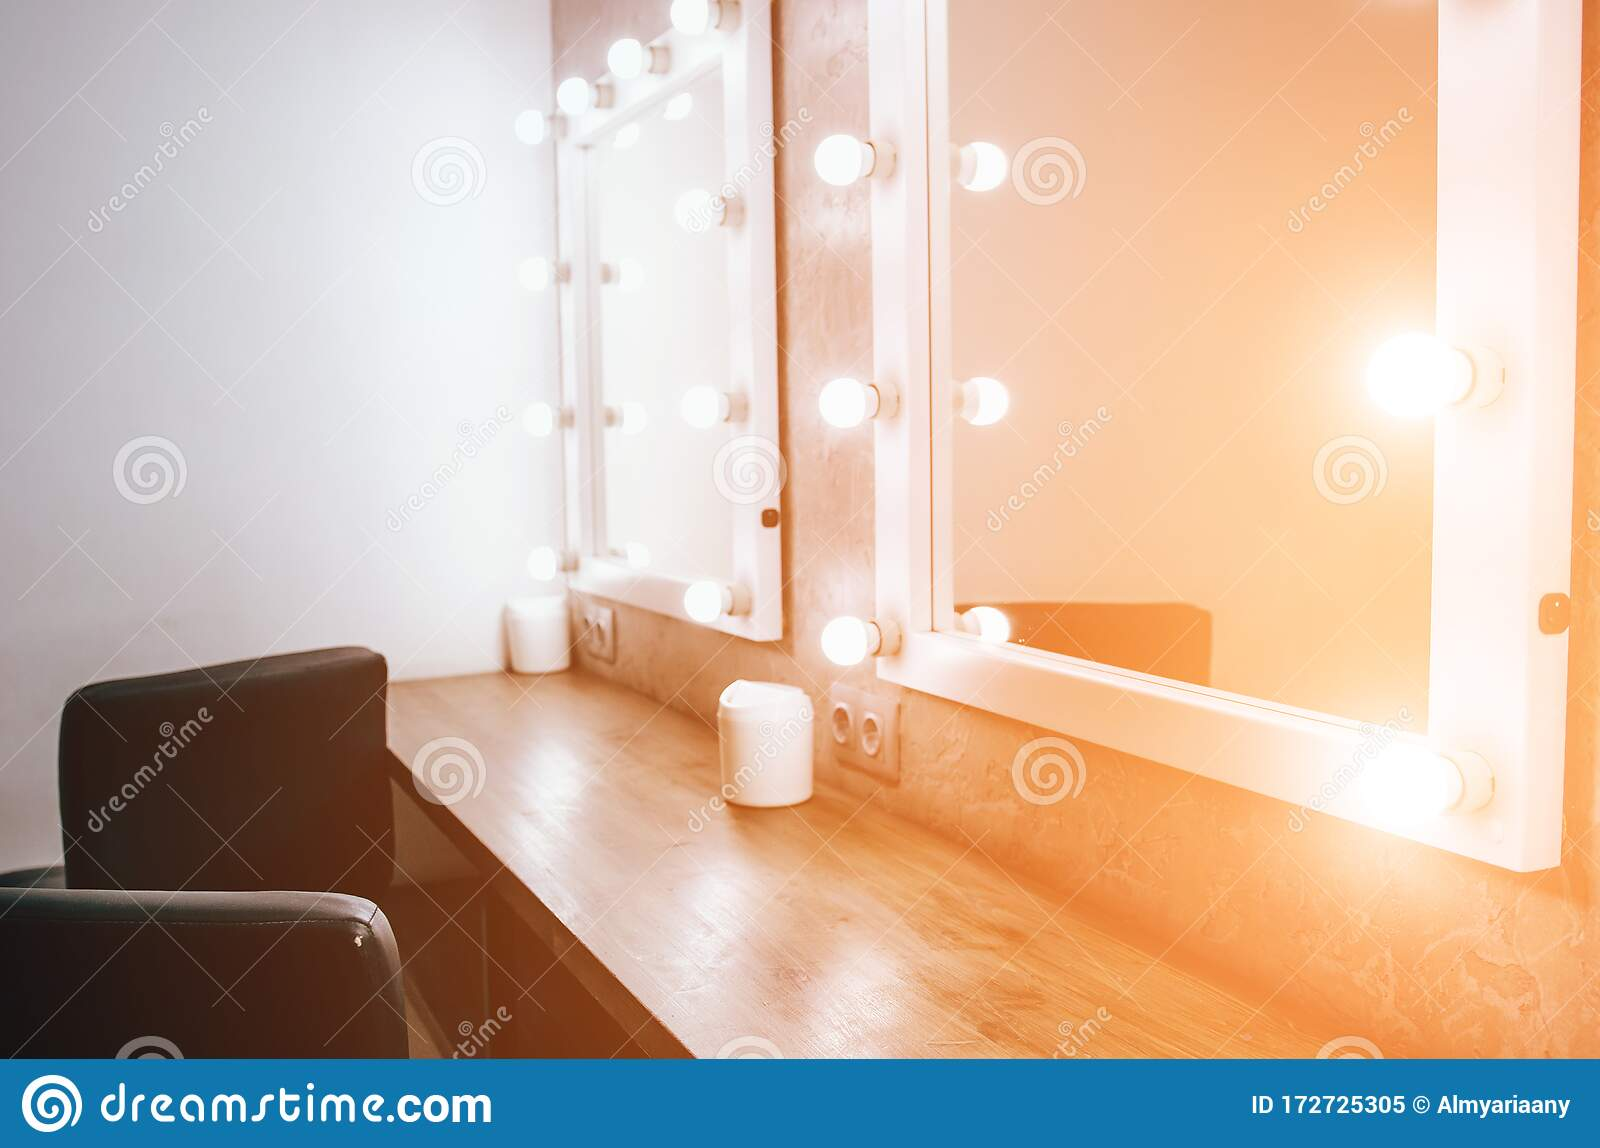 Room With Makeup Mirror Lights Stock Image Image Of Beauty Beautiful 172725305